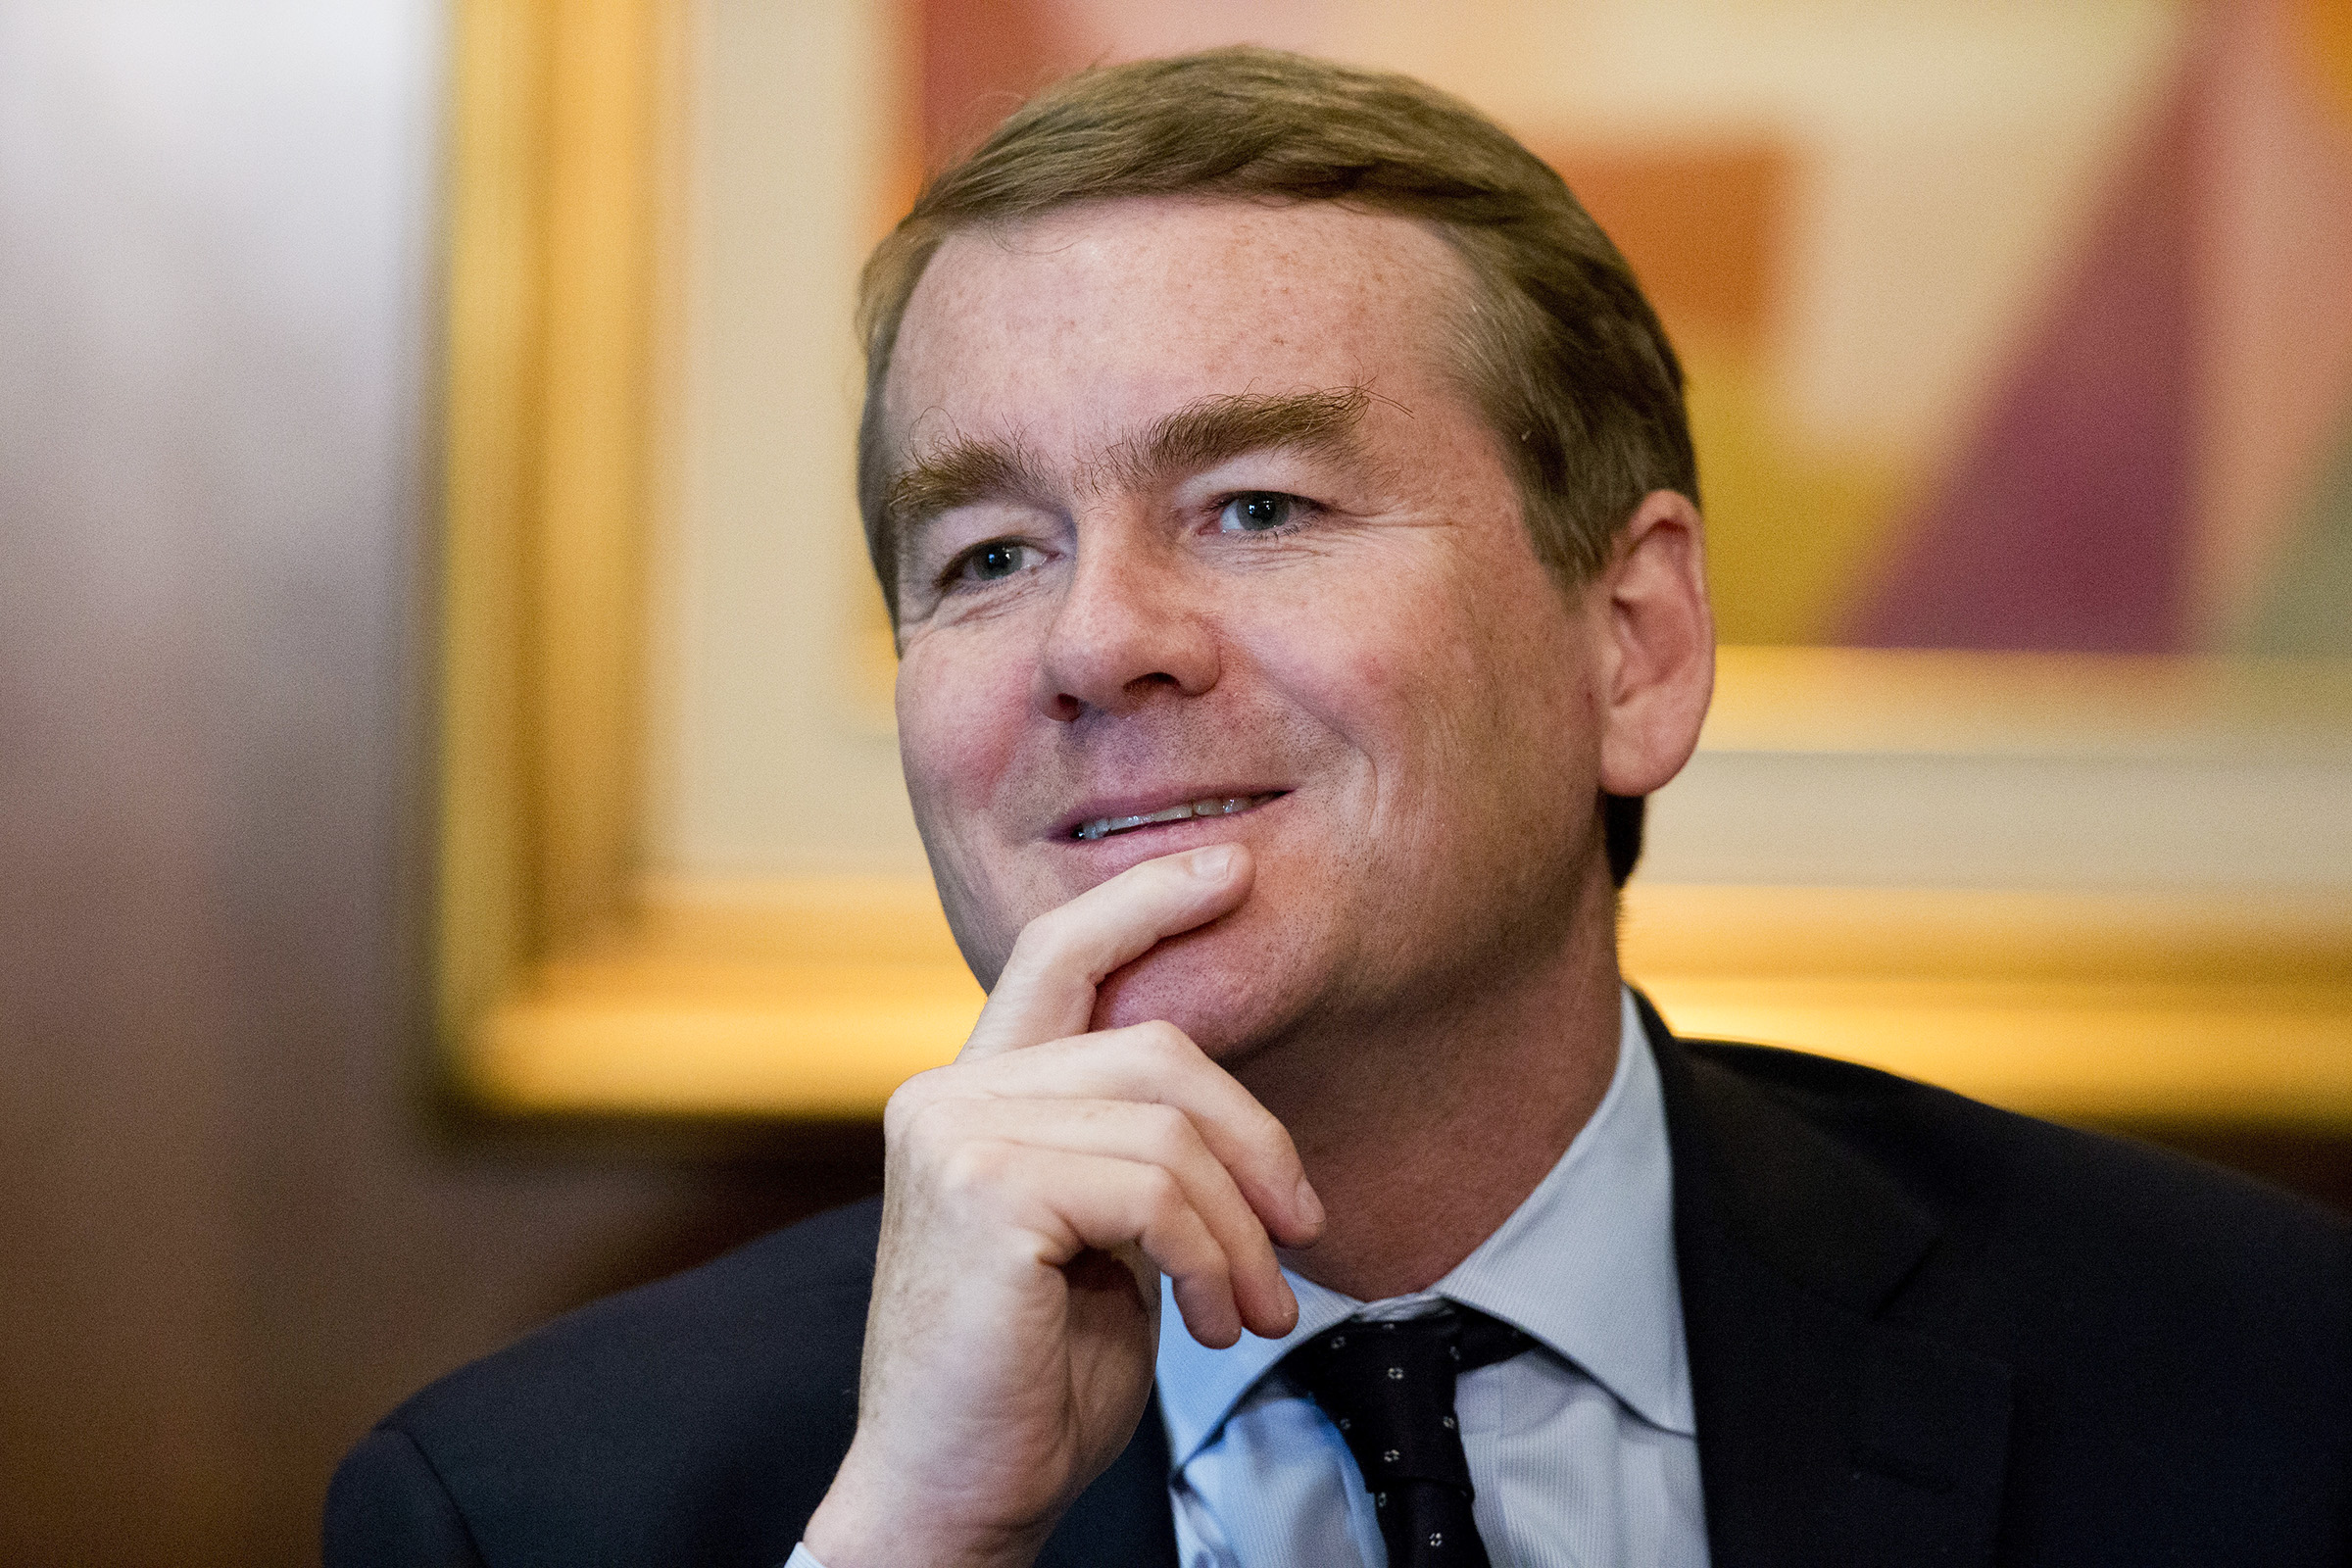 Photo: Sen. Michael Bennet July 2017 | AP